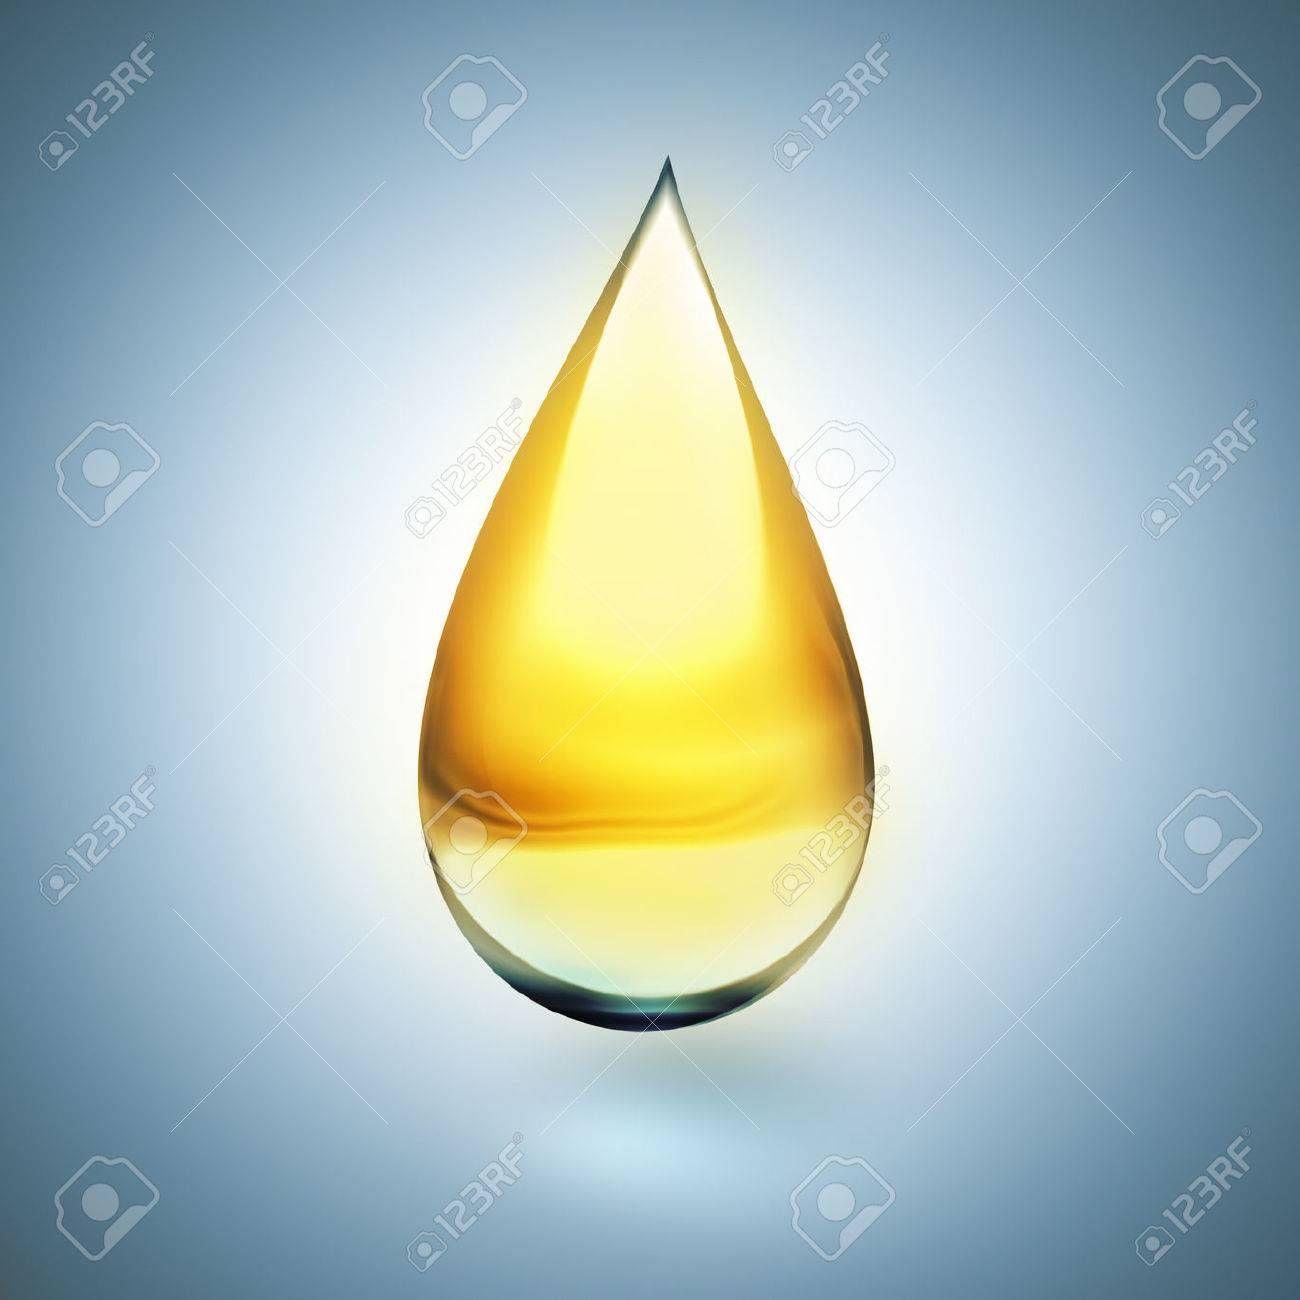 Oil Drop With Soft Shadow On Light Background Spon Soft Drop Oil Background Light Lights Background Novelty Lamp Lamp